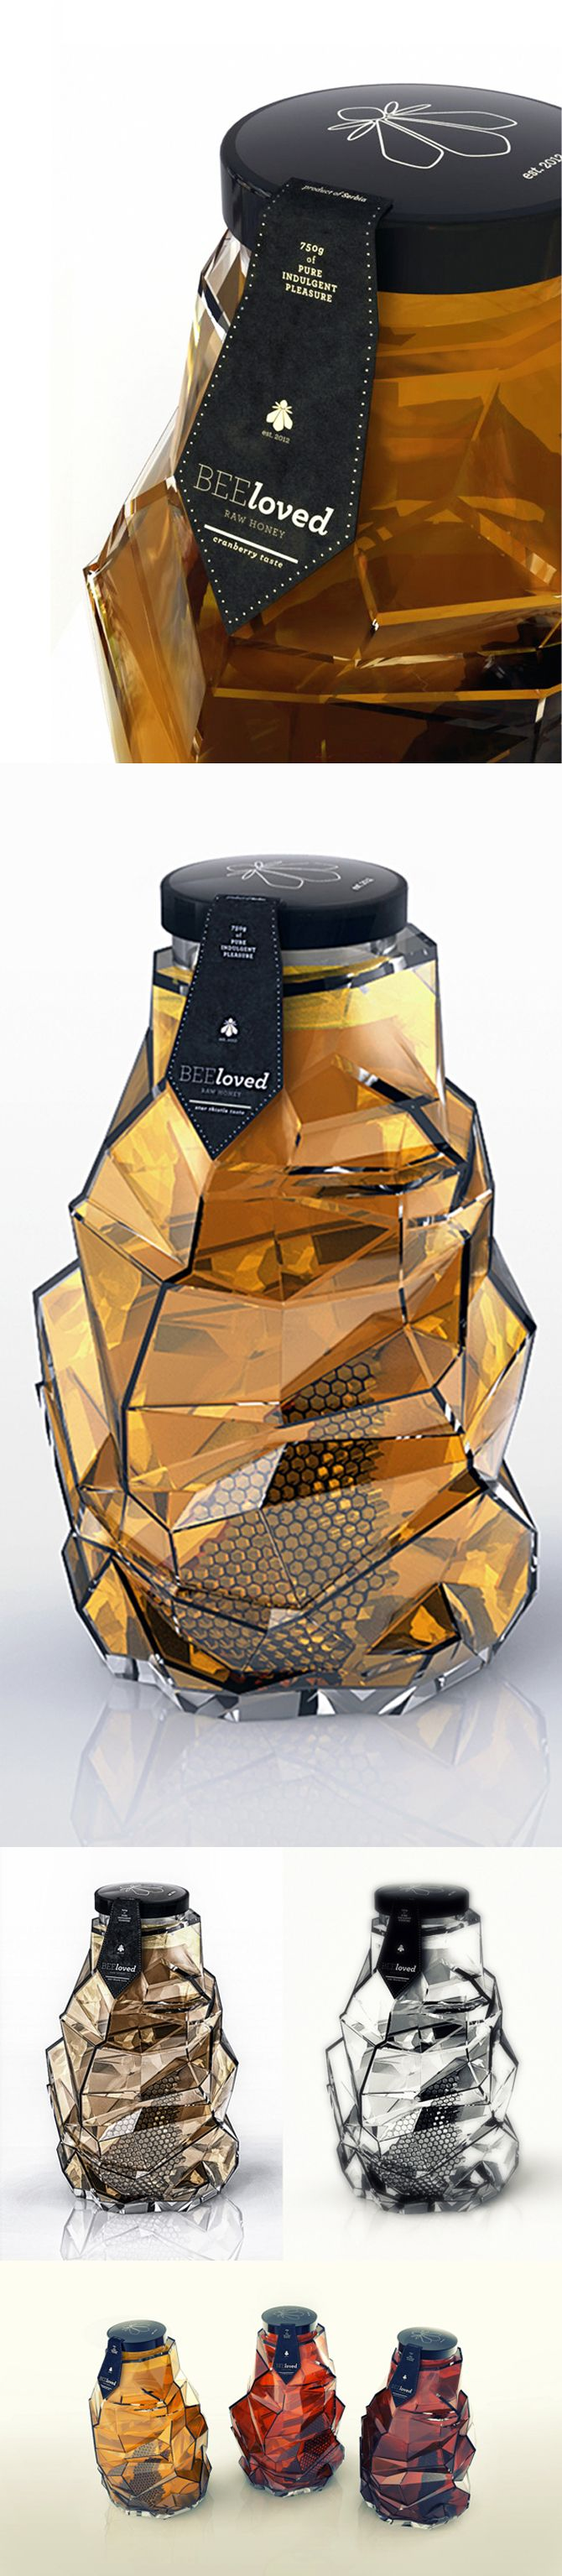 Honey packaging designed by Tamara Mihajlovic. Stunning!